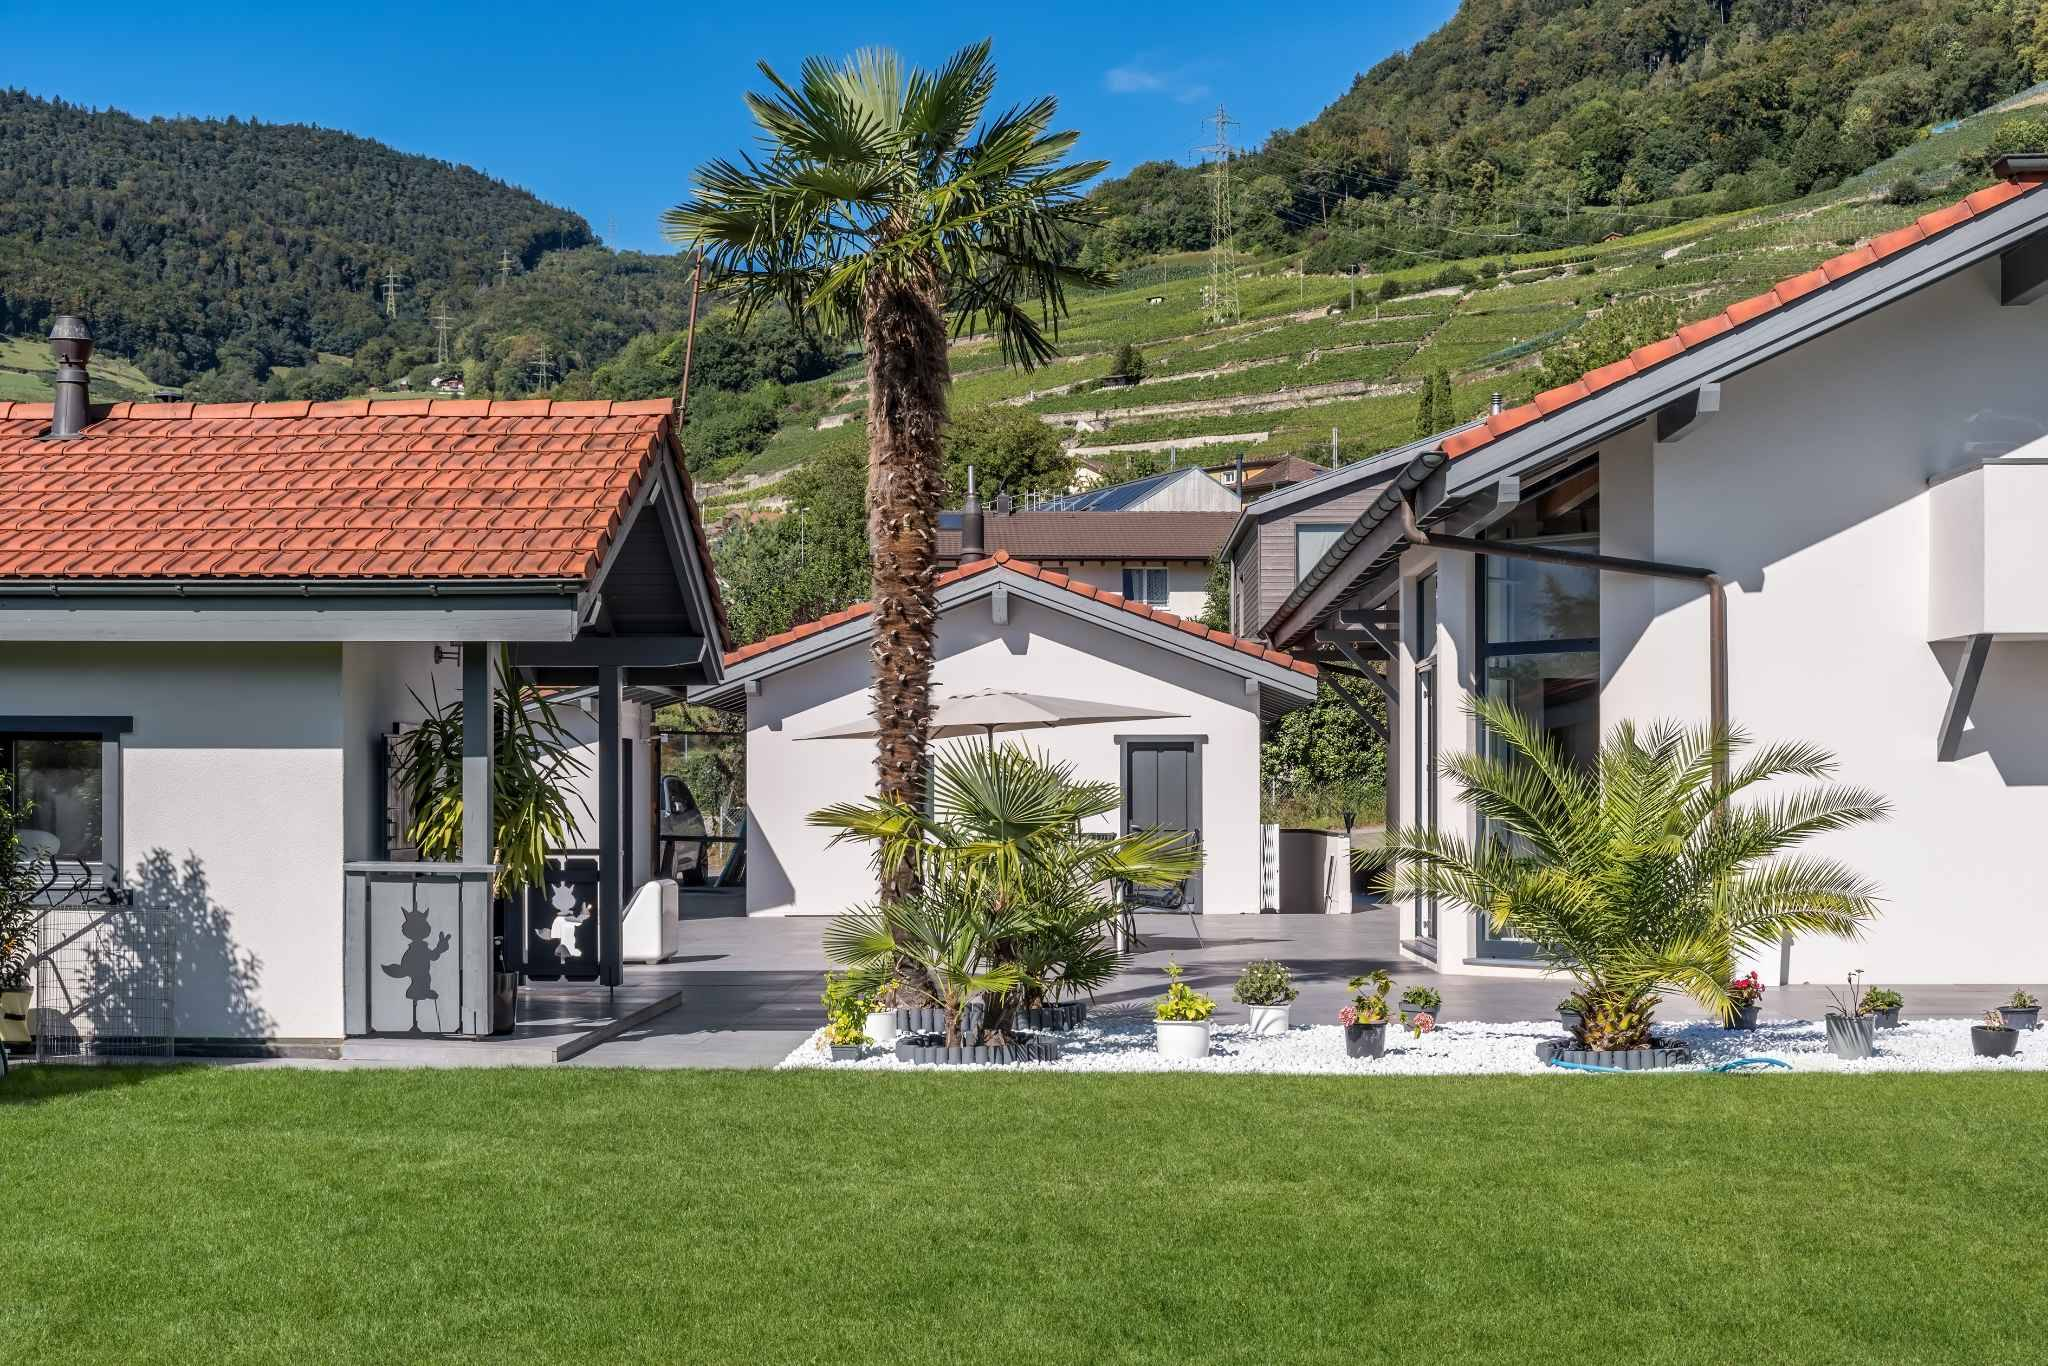 Detached 5.5-room villa and 2.5-room independent apartment